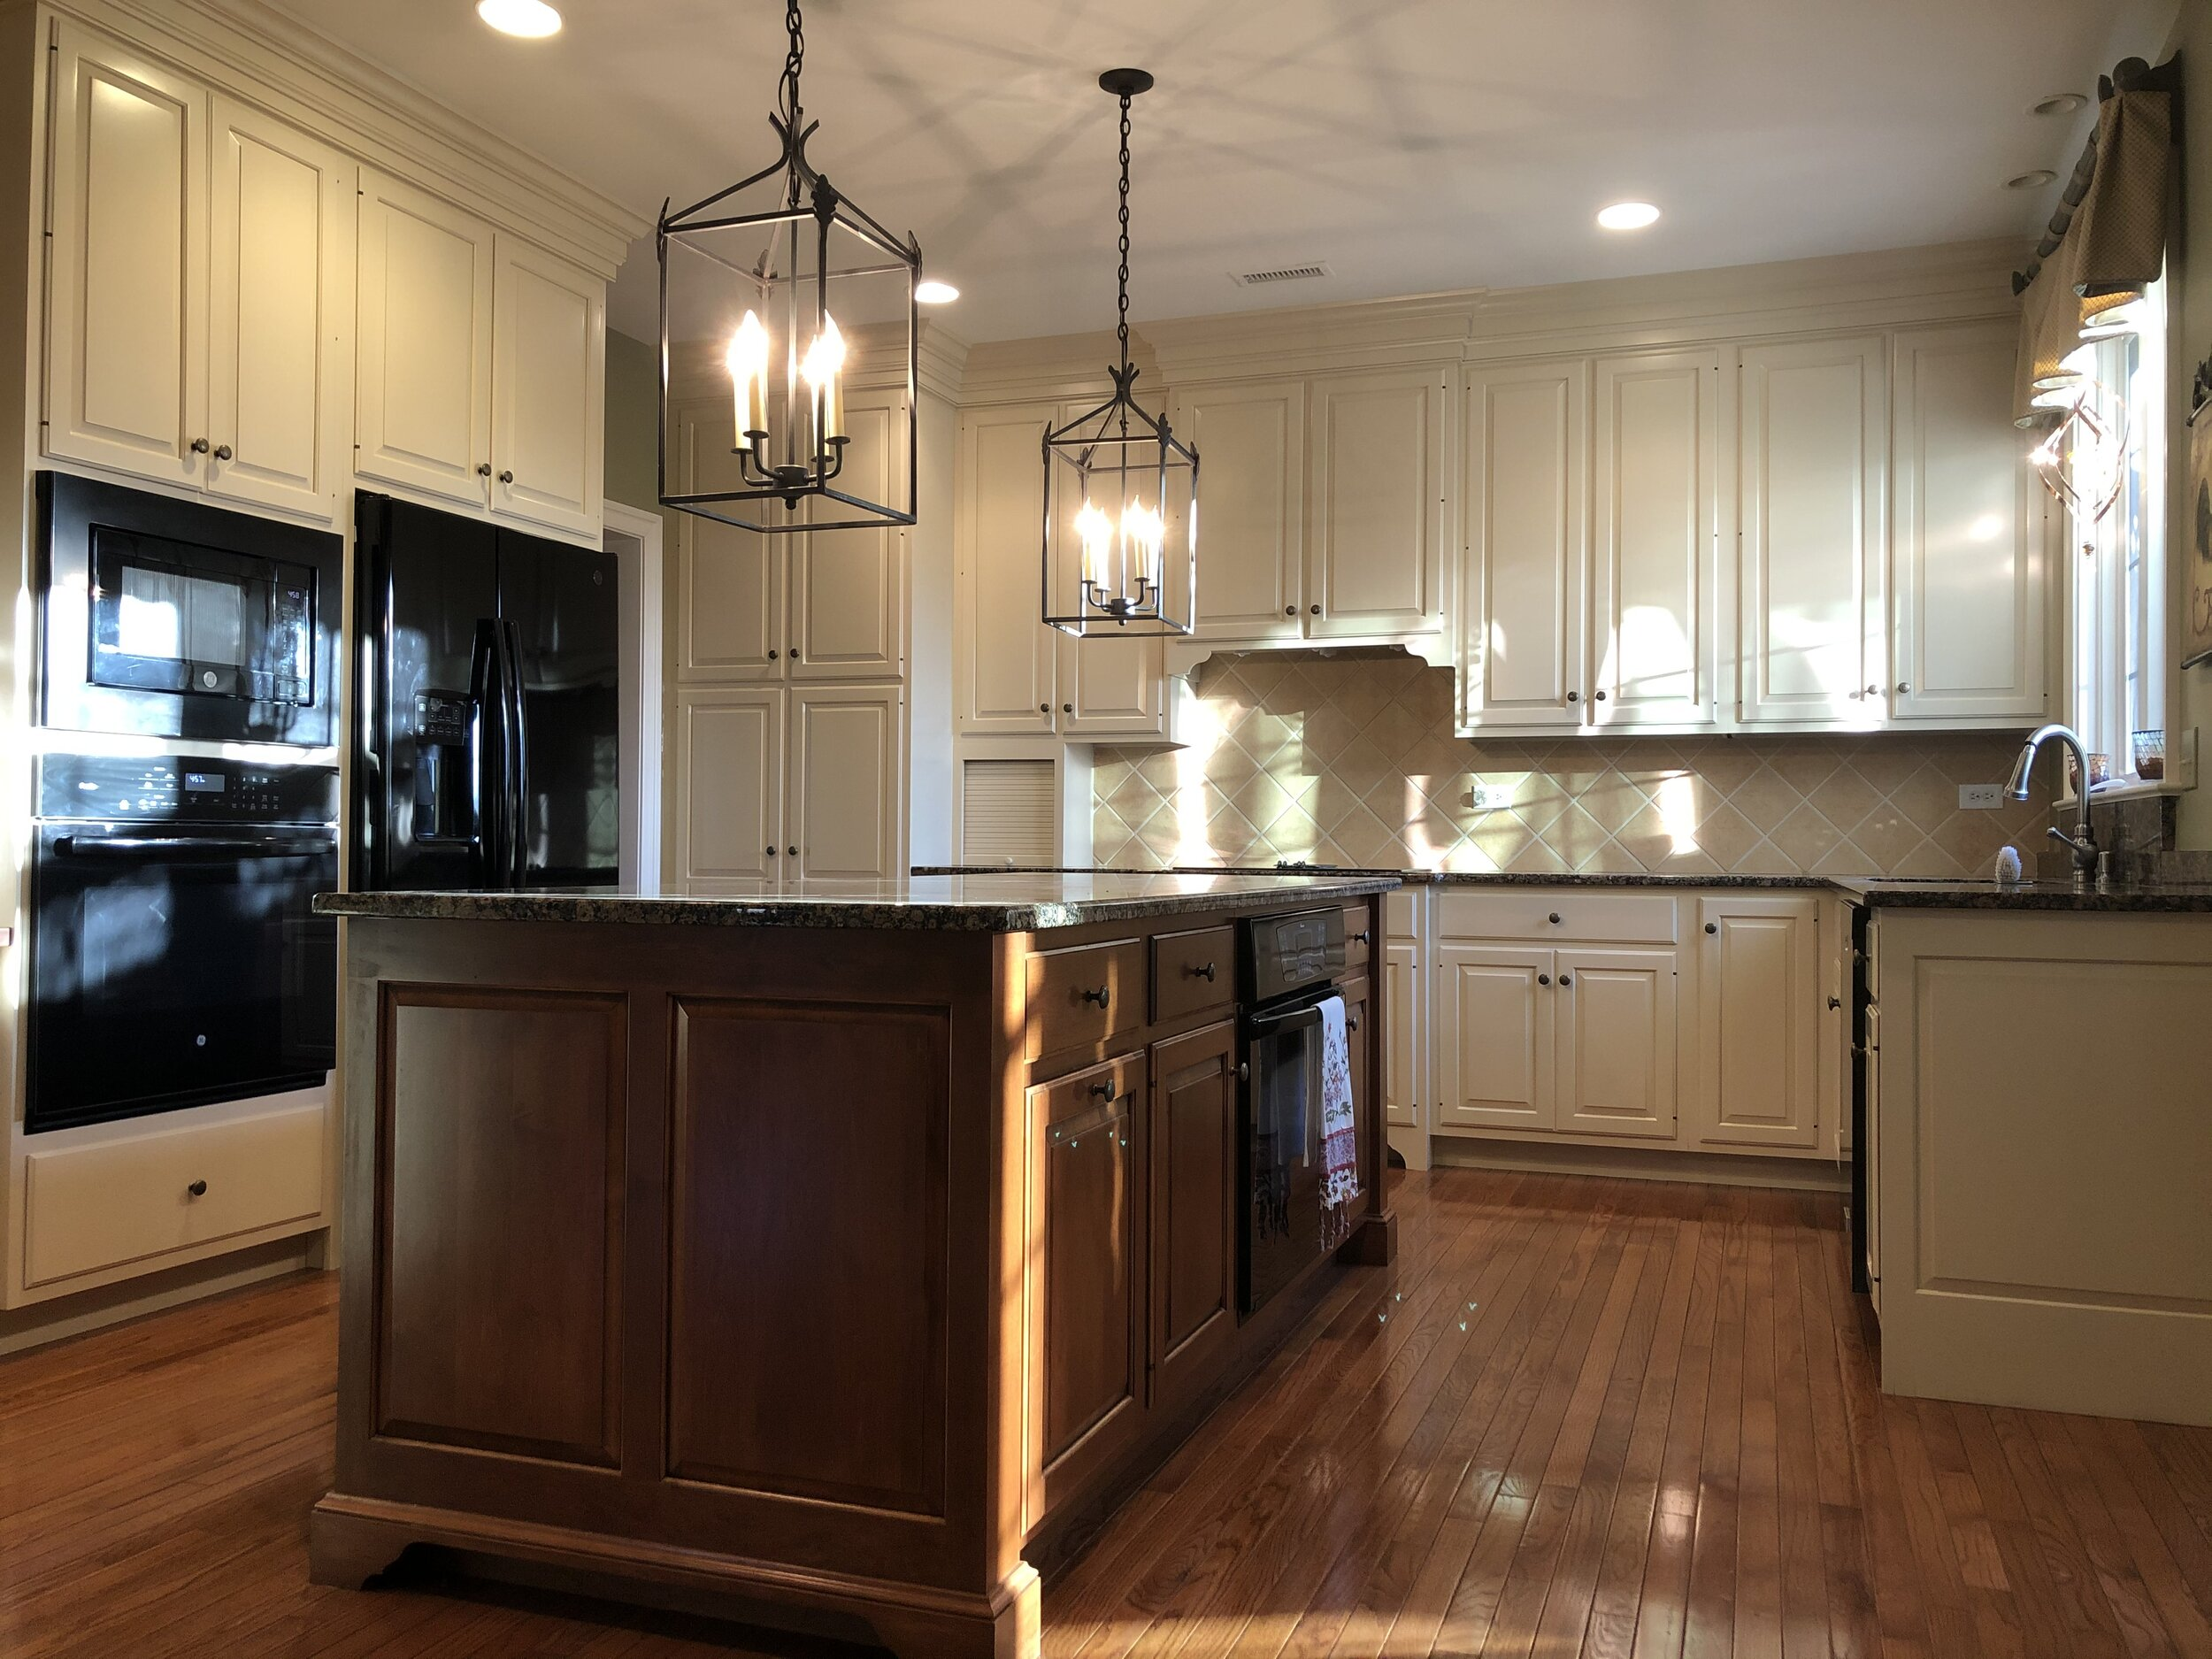 Kitchen Cabinet Refinishing Painting Interior And Exterior Residential Painting Services West Chester Pa Downingtown Pa Tcm Finishes